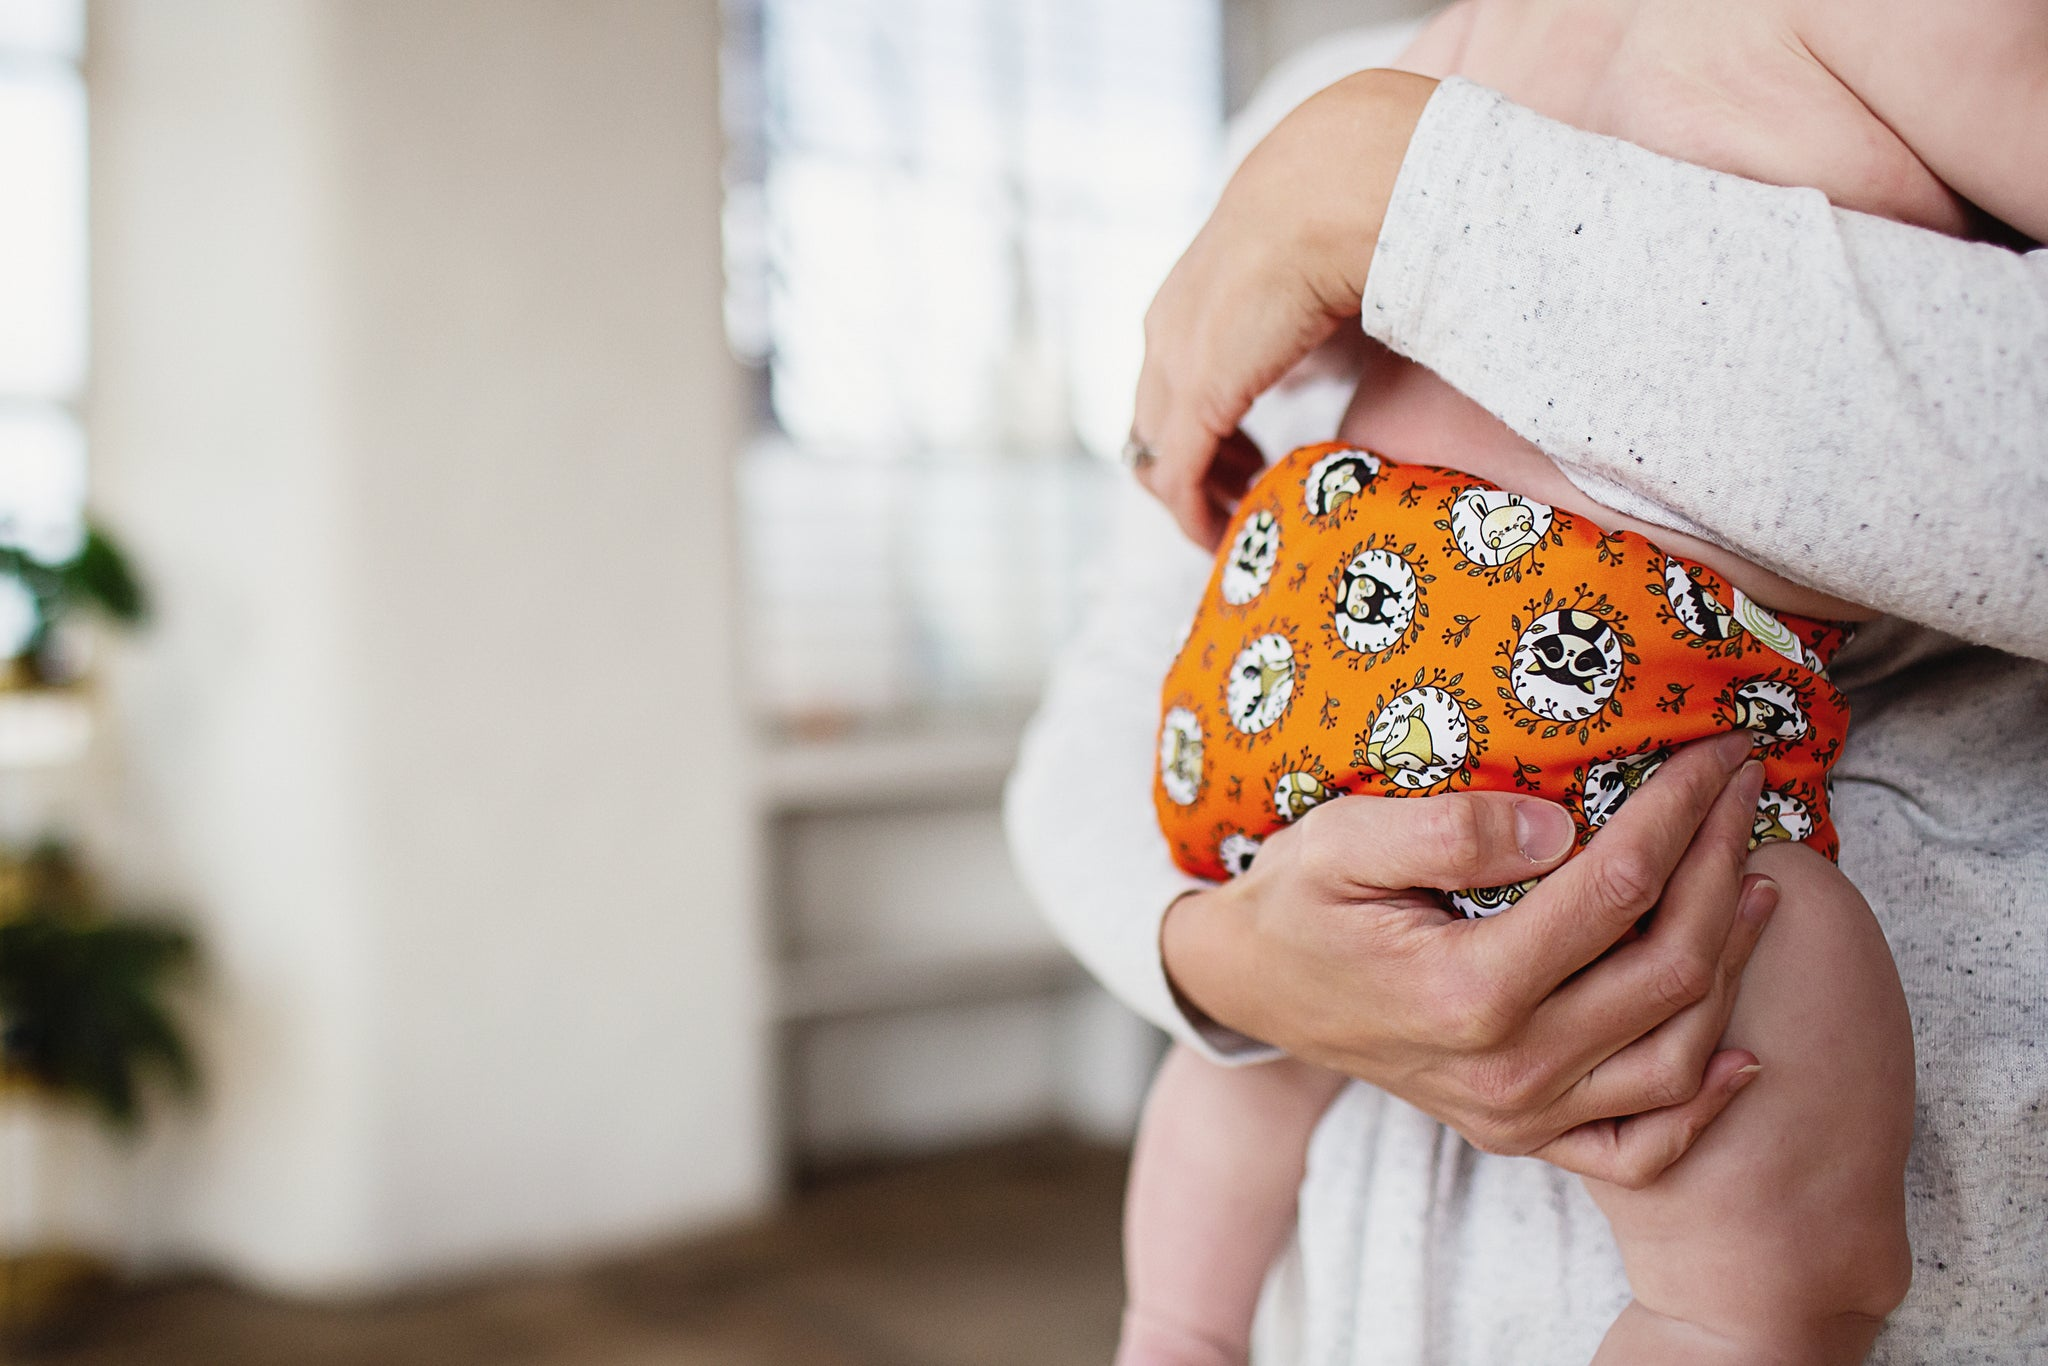 Parent holding baby in orange reusable nappy